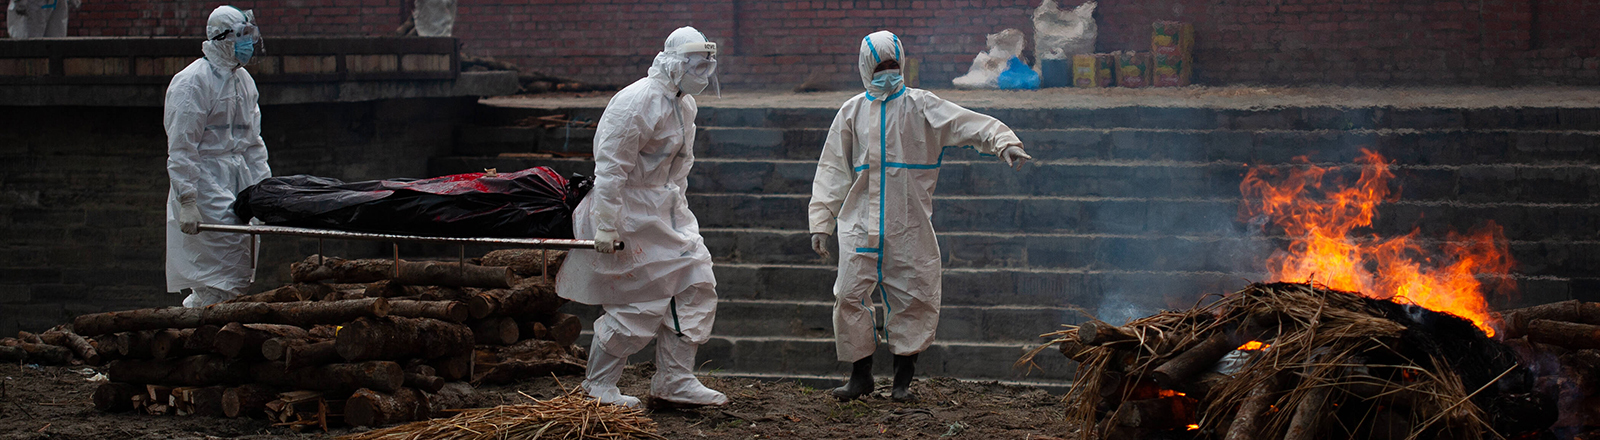 Coronavirus Emergency In Nepal Workers donned in Personal Protective Equipment (PPE) carry a body of a deceased who succumbed to COVID-19 for cremation on the bank of Bagmati River in Kathmandu, Nepal on Tuesday, May 4, 2021.